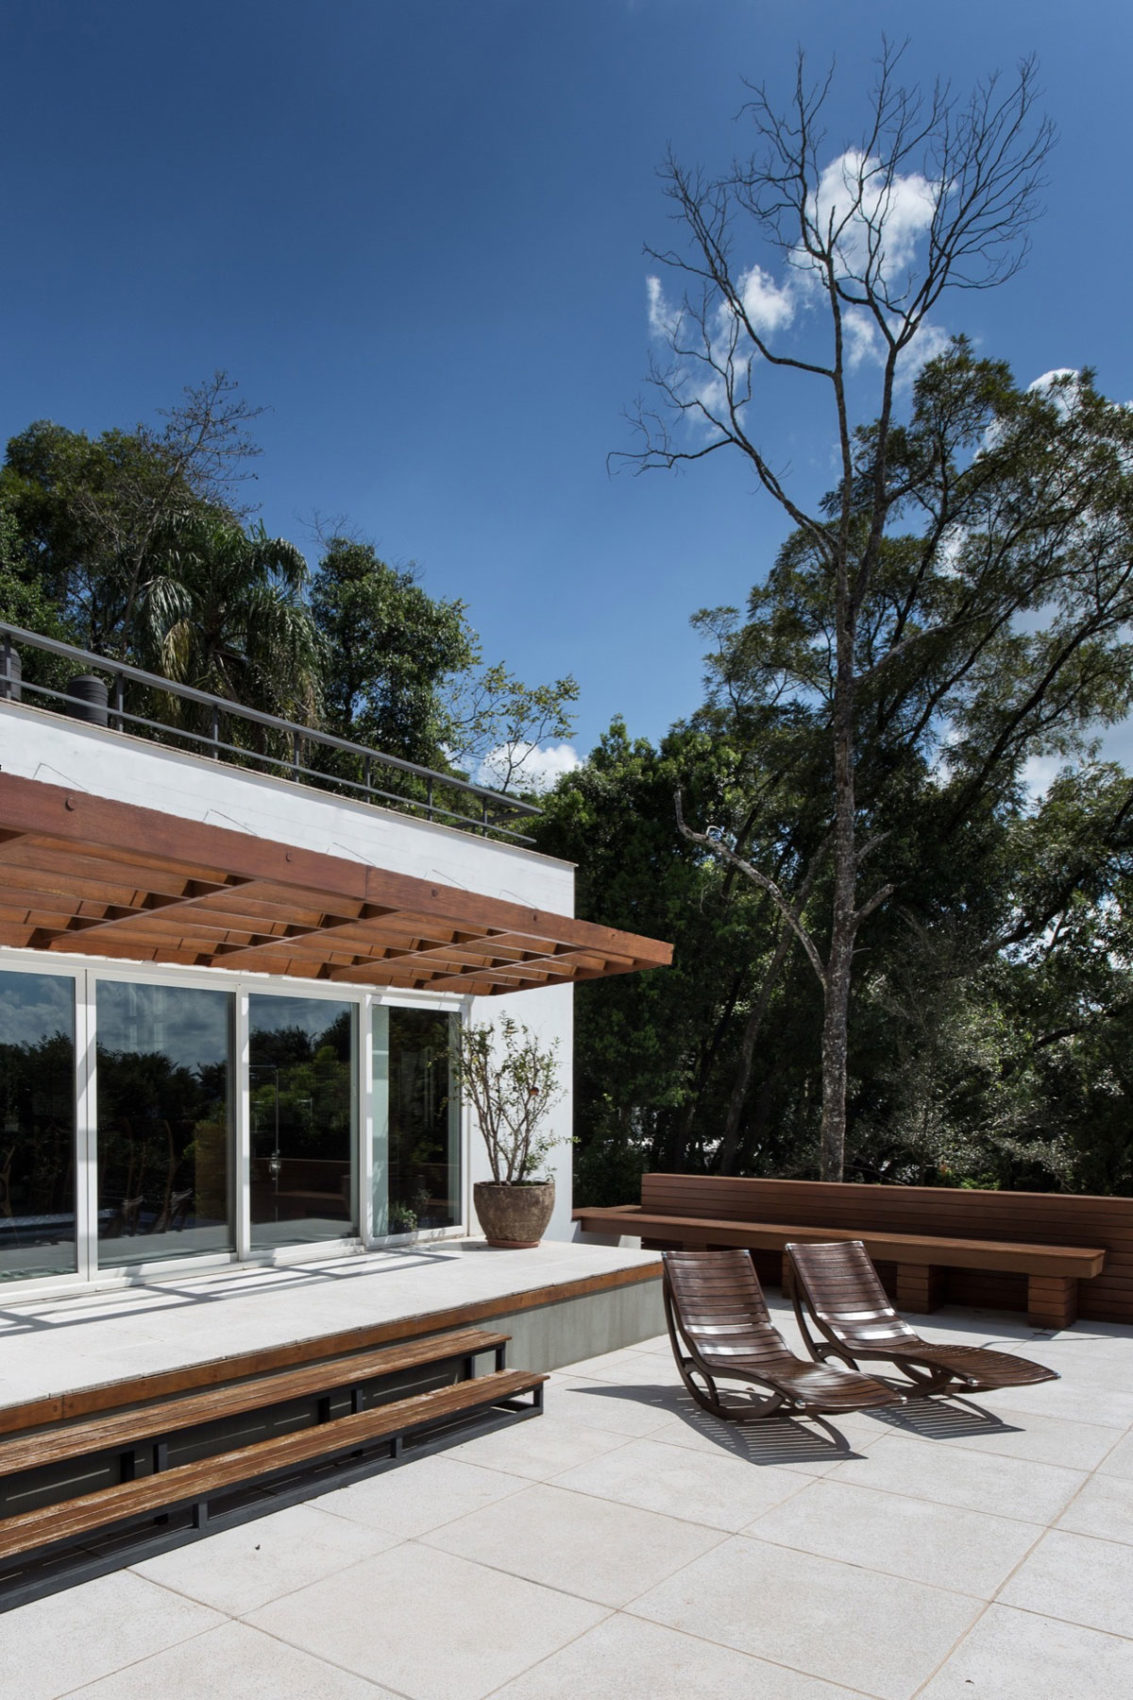 Casa 4.16.3 by Luciano Lerner Basso (8)